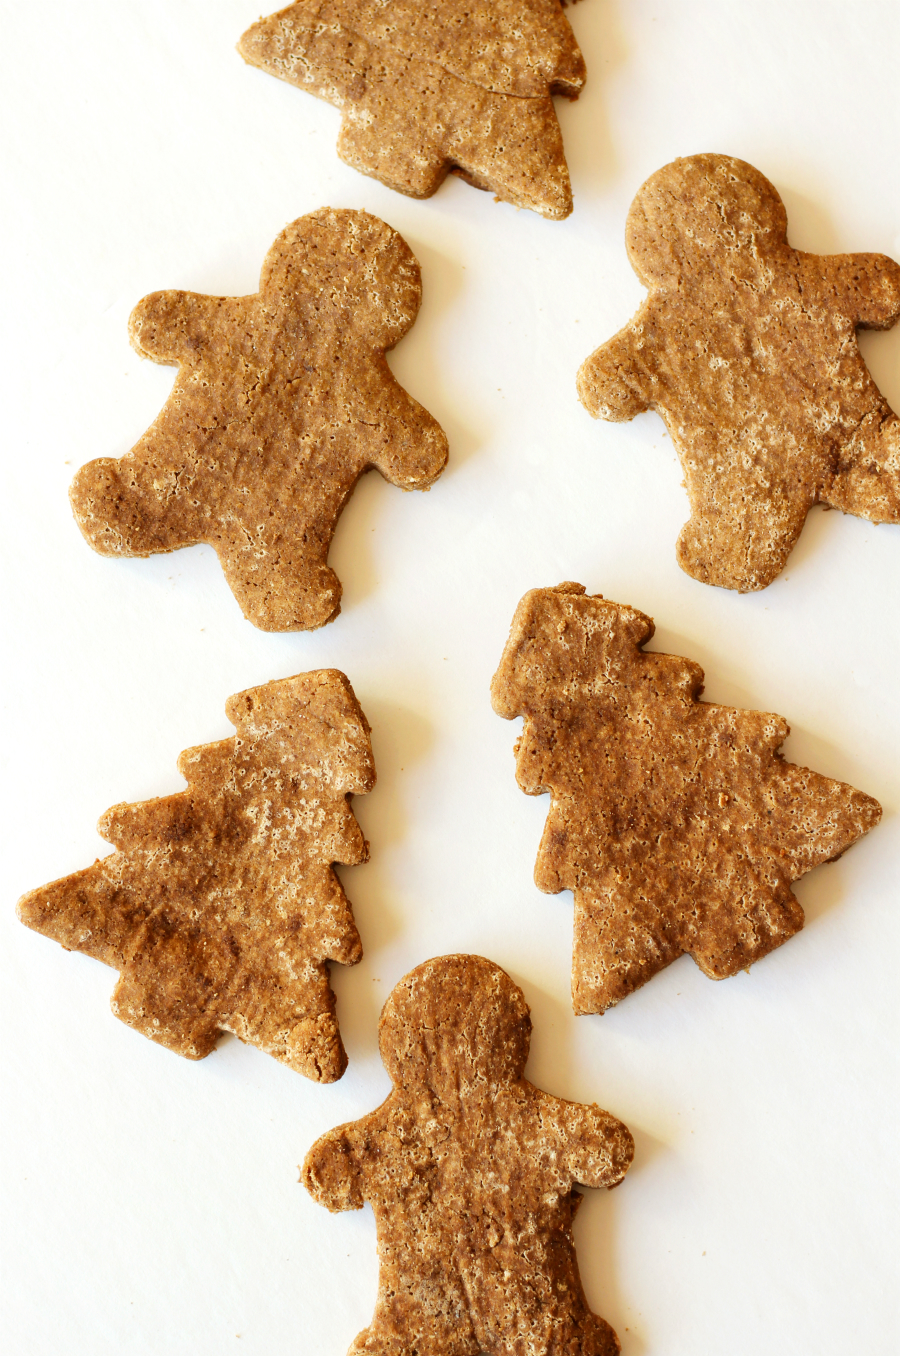 Classic Gluten-Free Gingerbread Cookies (Vegan) | Strength and Sunshine @RebeccaGF666 The holiday season is not complete without Gingerbread Cookies! These classic gluten-free, vegan, and allergy-free gingerbread men (and friends) are such a fun sweet treat for all to have this Christmas. Food allergies don't have to get in the way with this dessert recipe!